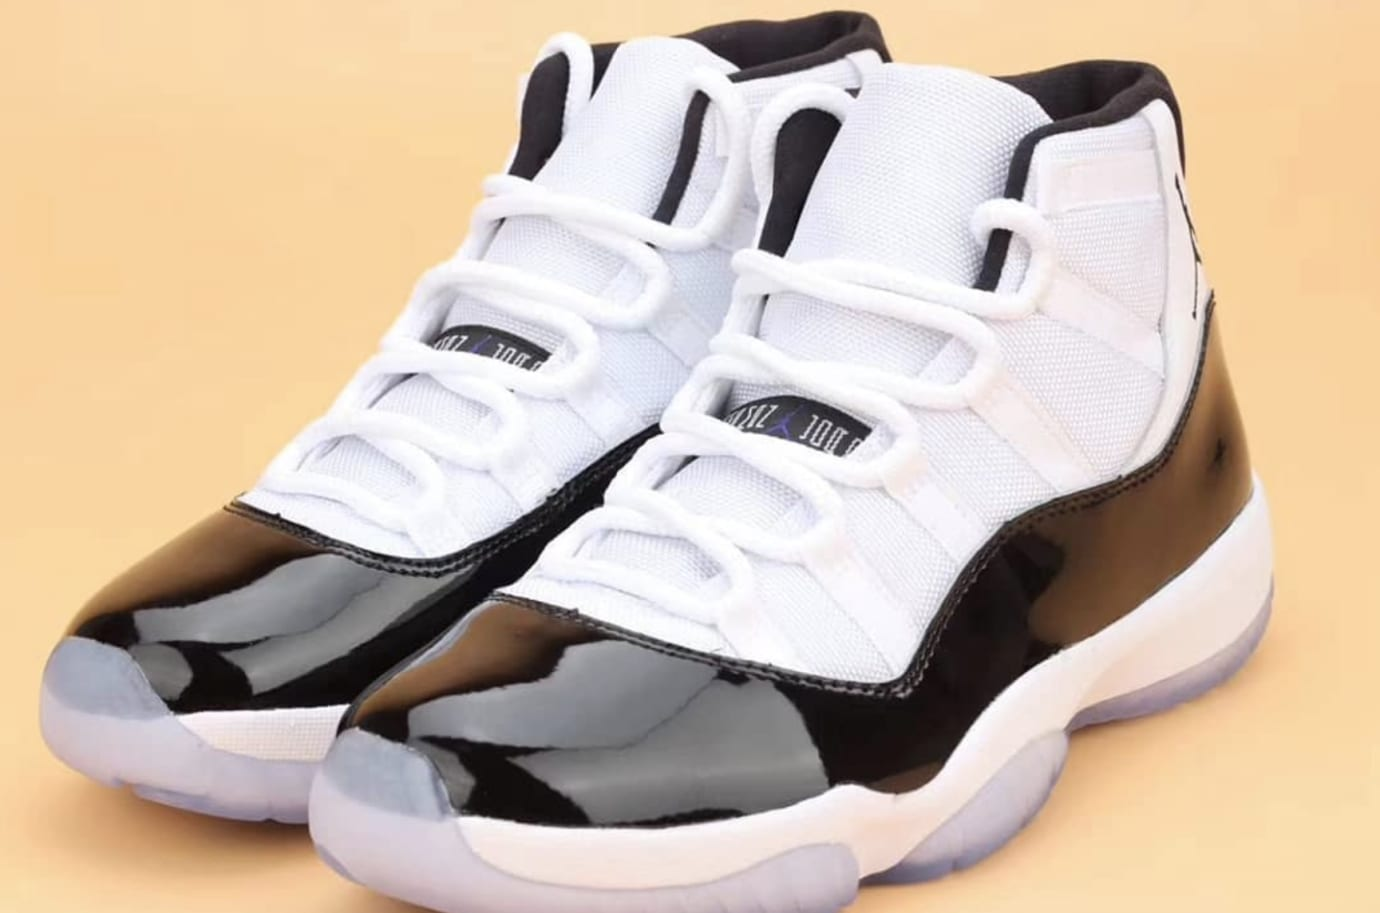 9b2f5f031932 Concord  Air Jordan 11 Returning In 2018 378037-100